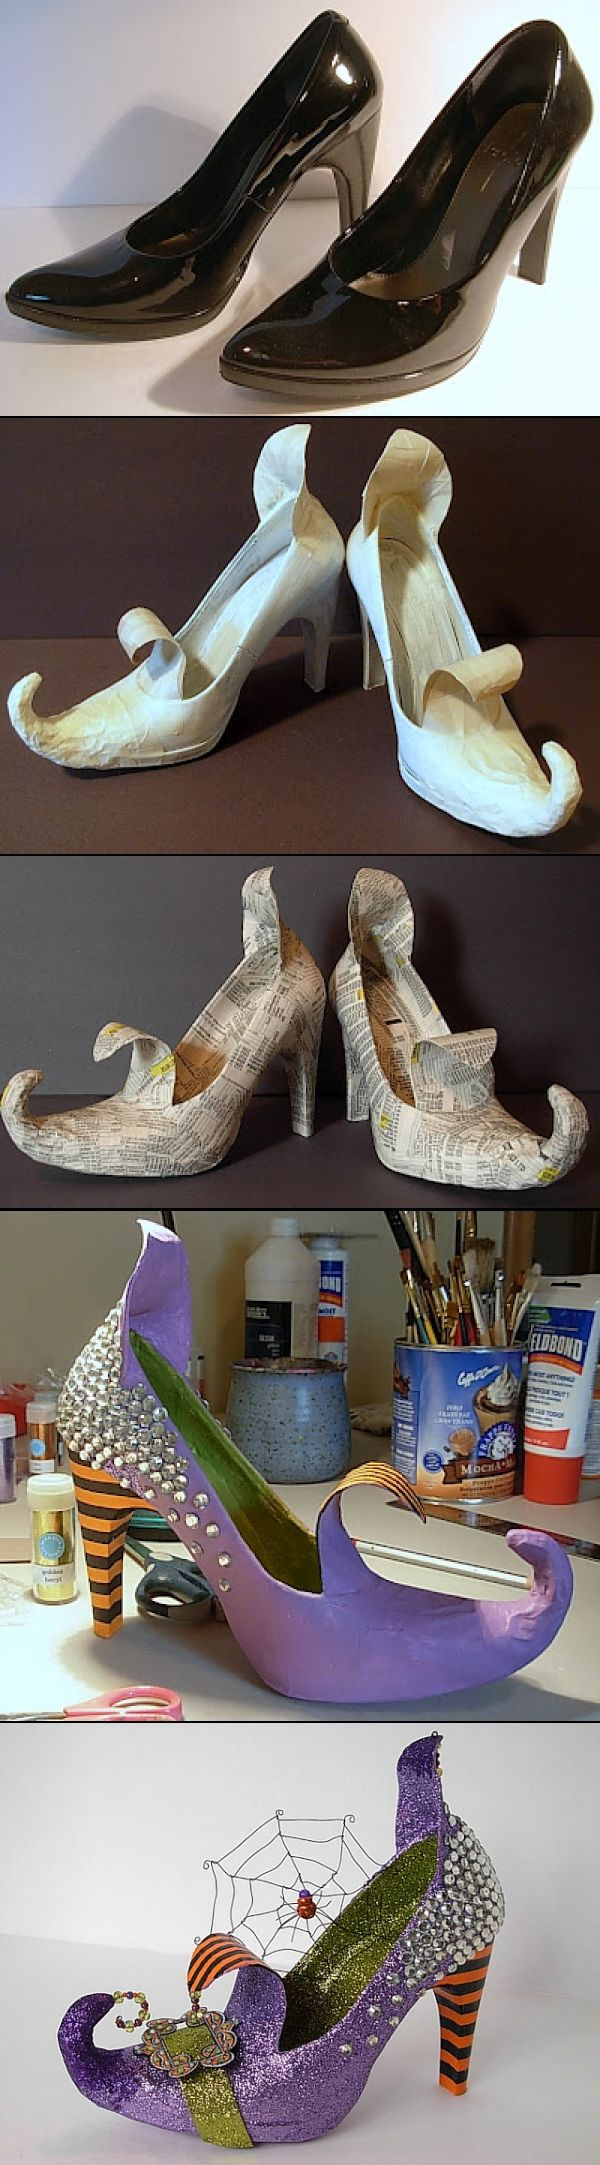 Maybe I should get crafty, since Meredith has awesome shoes for her costume! http://videosdeterror.com.mx